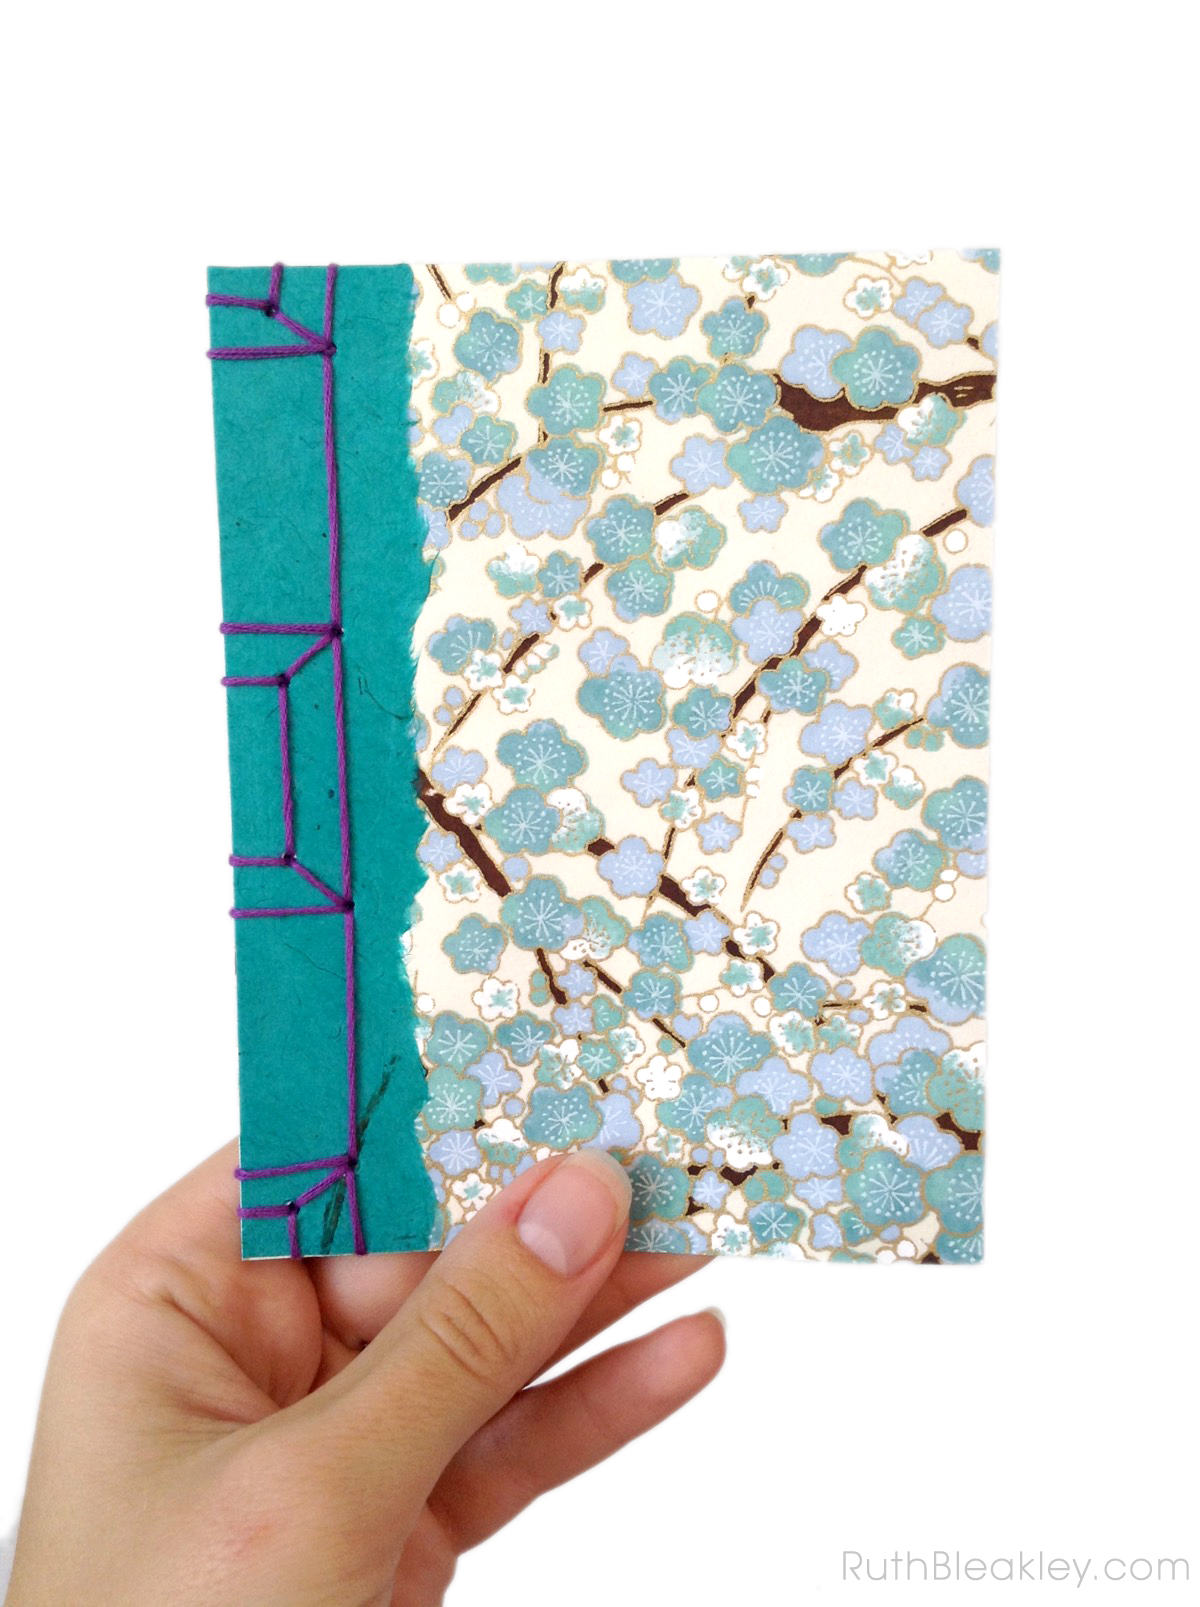 Japanese Stab Bound Book with Blue Plum Blossom Paper by Ruth Bleakley